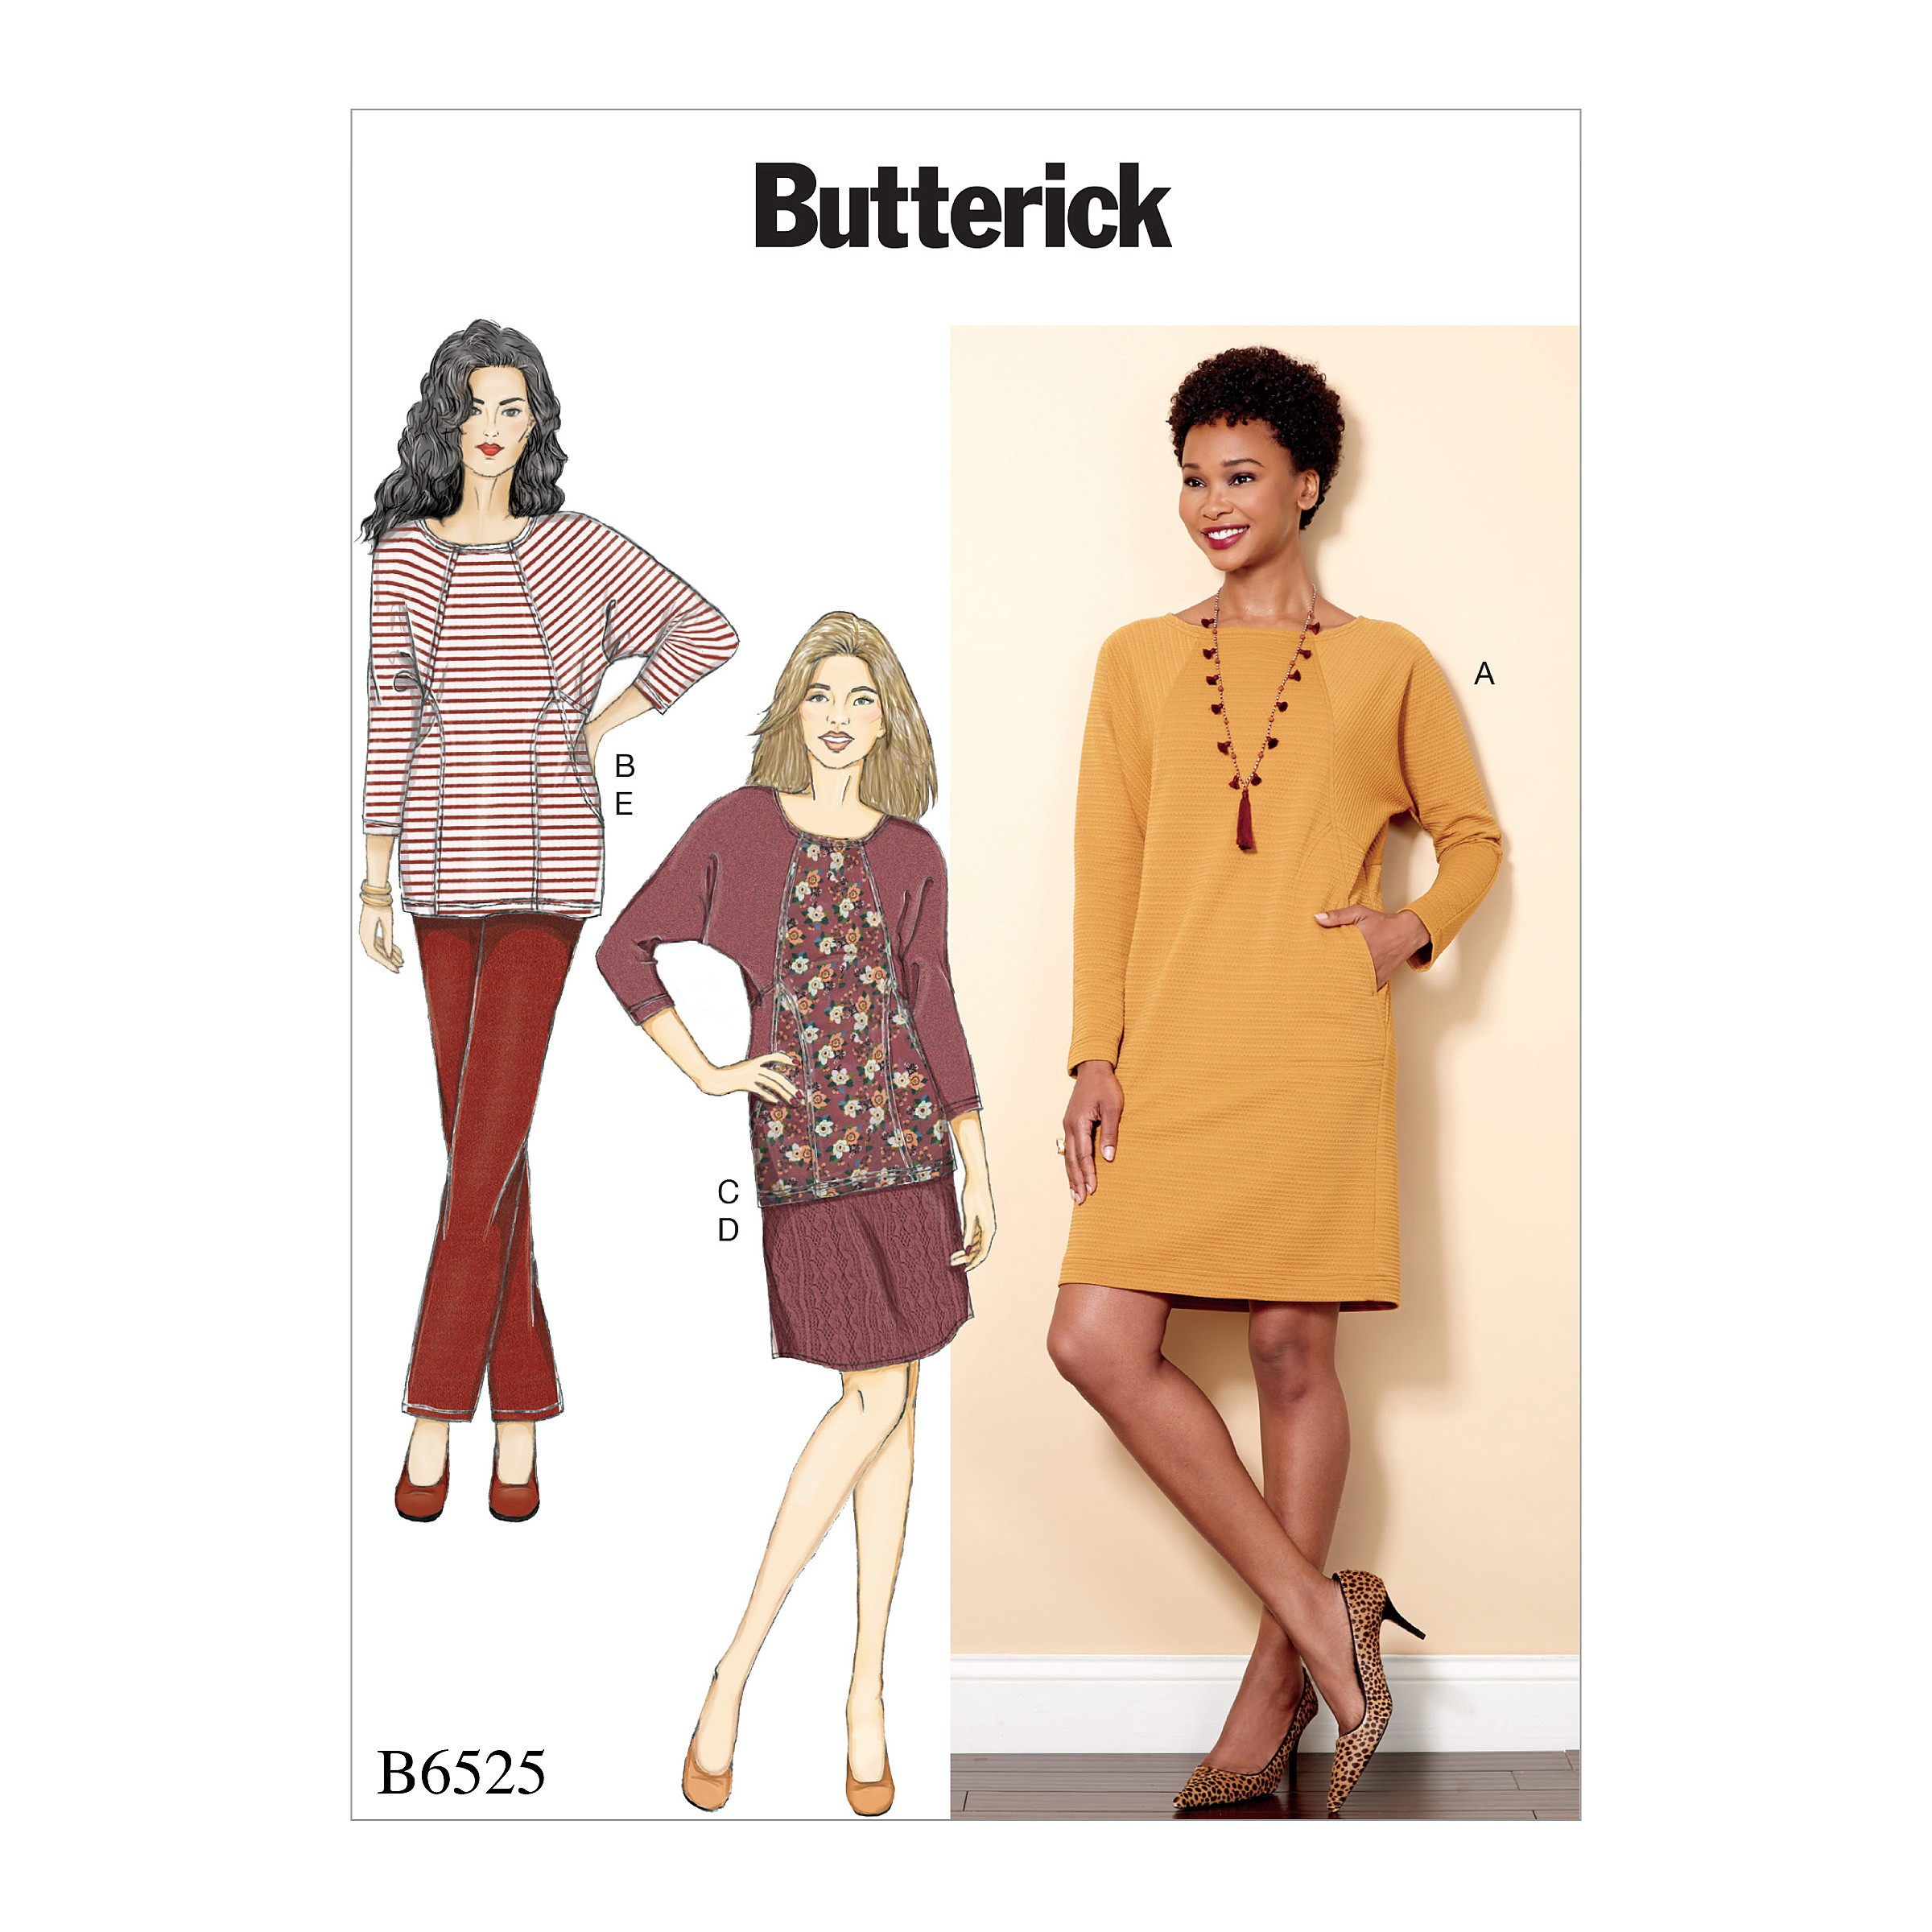 Butterick Sewing Pattern 6525 Misses'Knit Dress And Tunic, Skirt, And Trousers